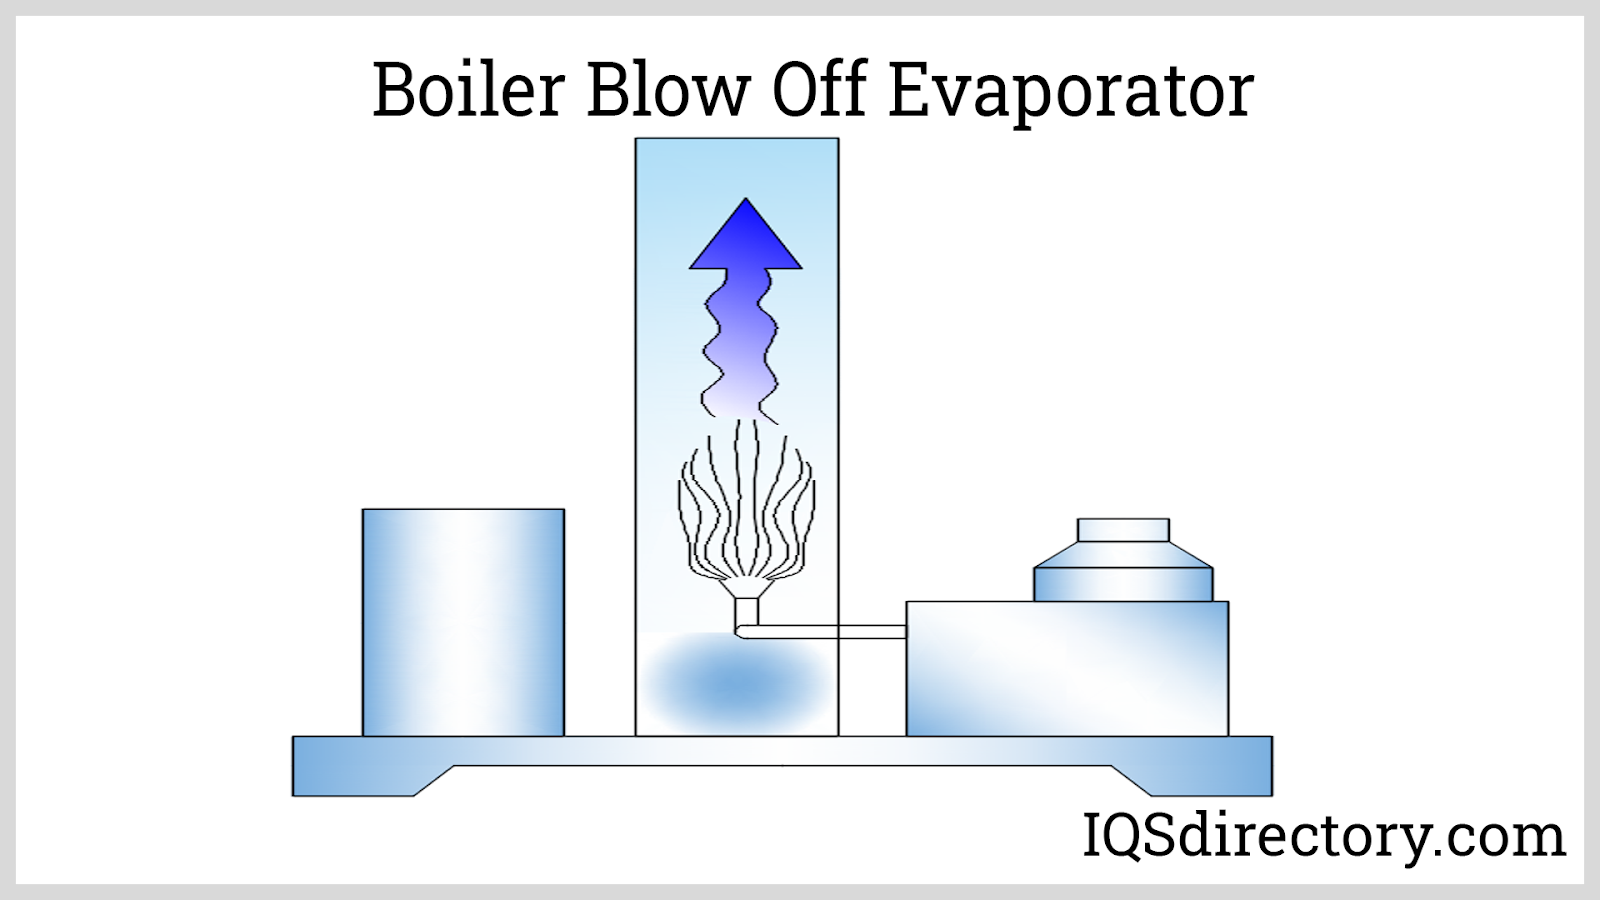 Boiler Blow Off Evaporator